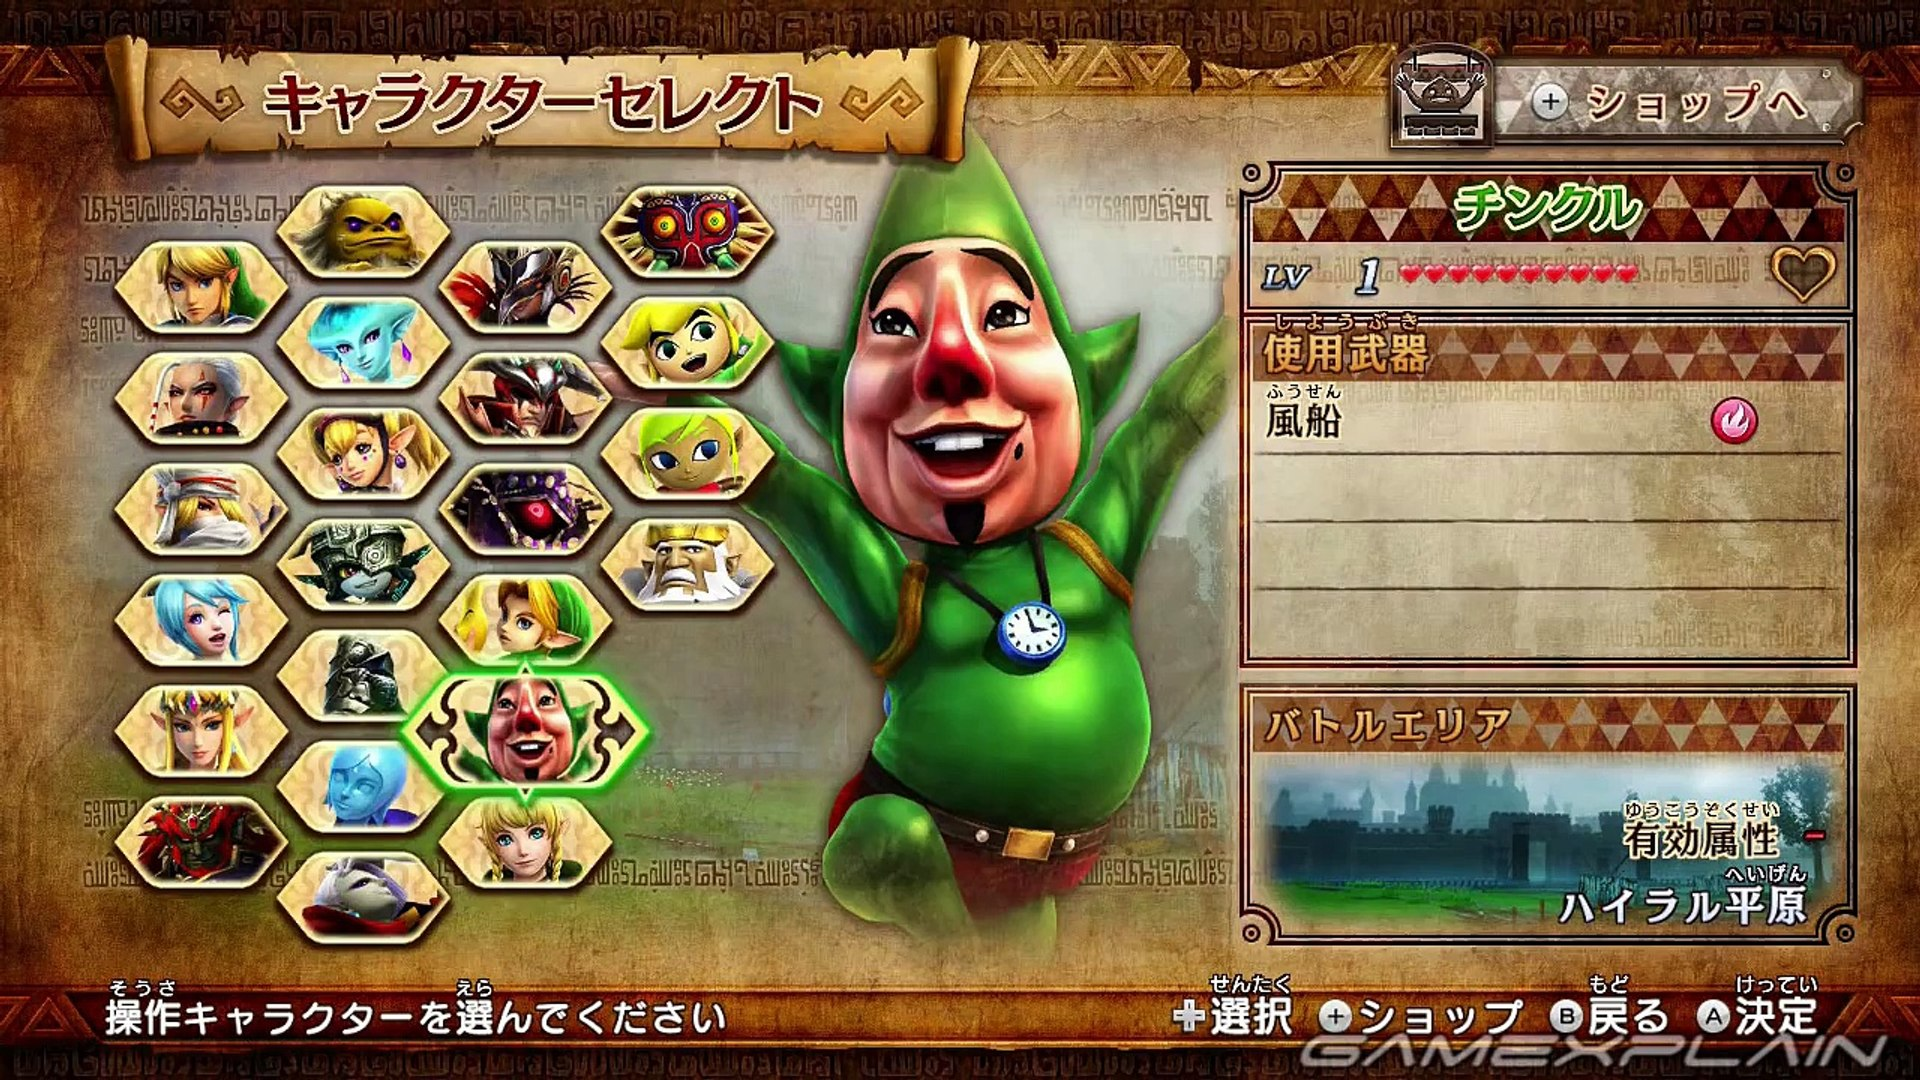 Hyrule Warriors Legends All New Characters On Wii U Skull Kid Linkle Tetra More Dailymotion Video